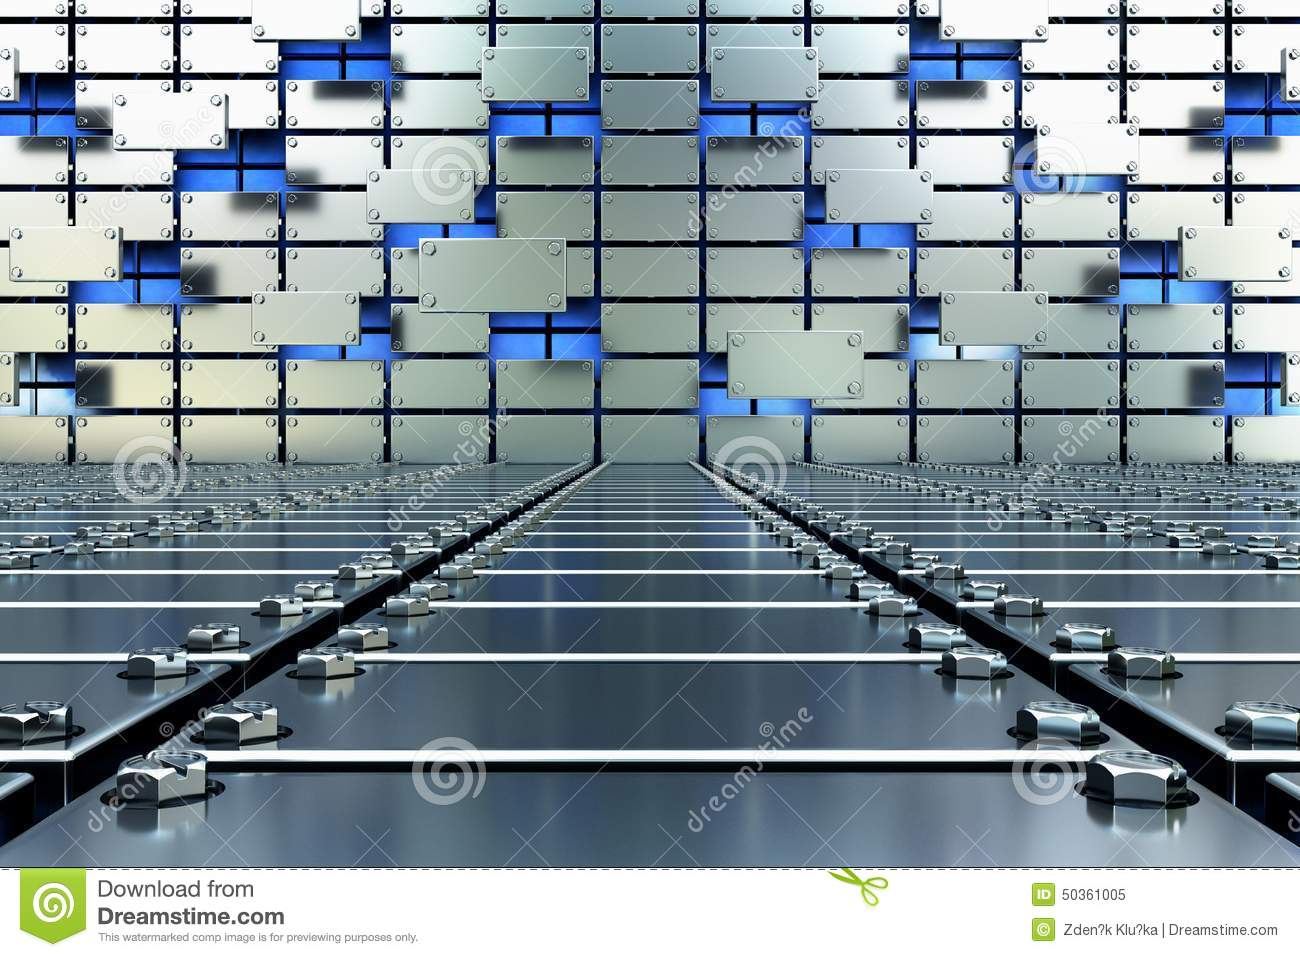 Steely future stock illustration image 50361005 for Cubi spaceo